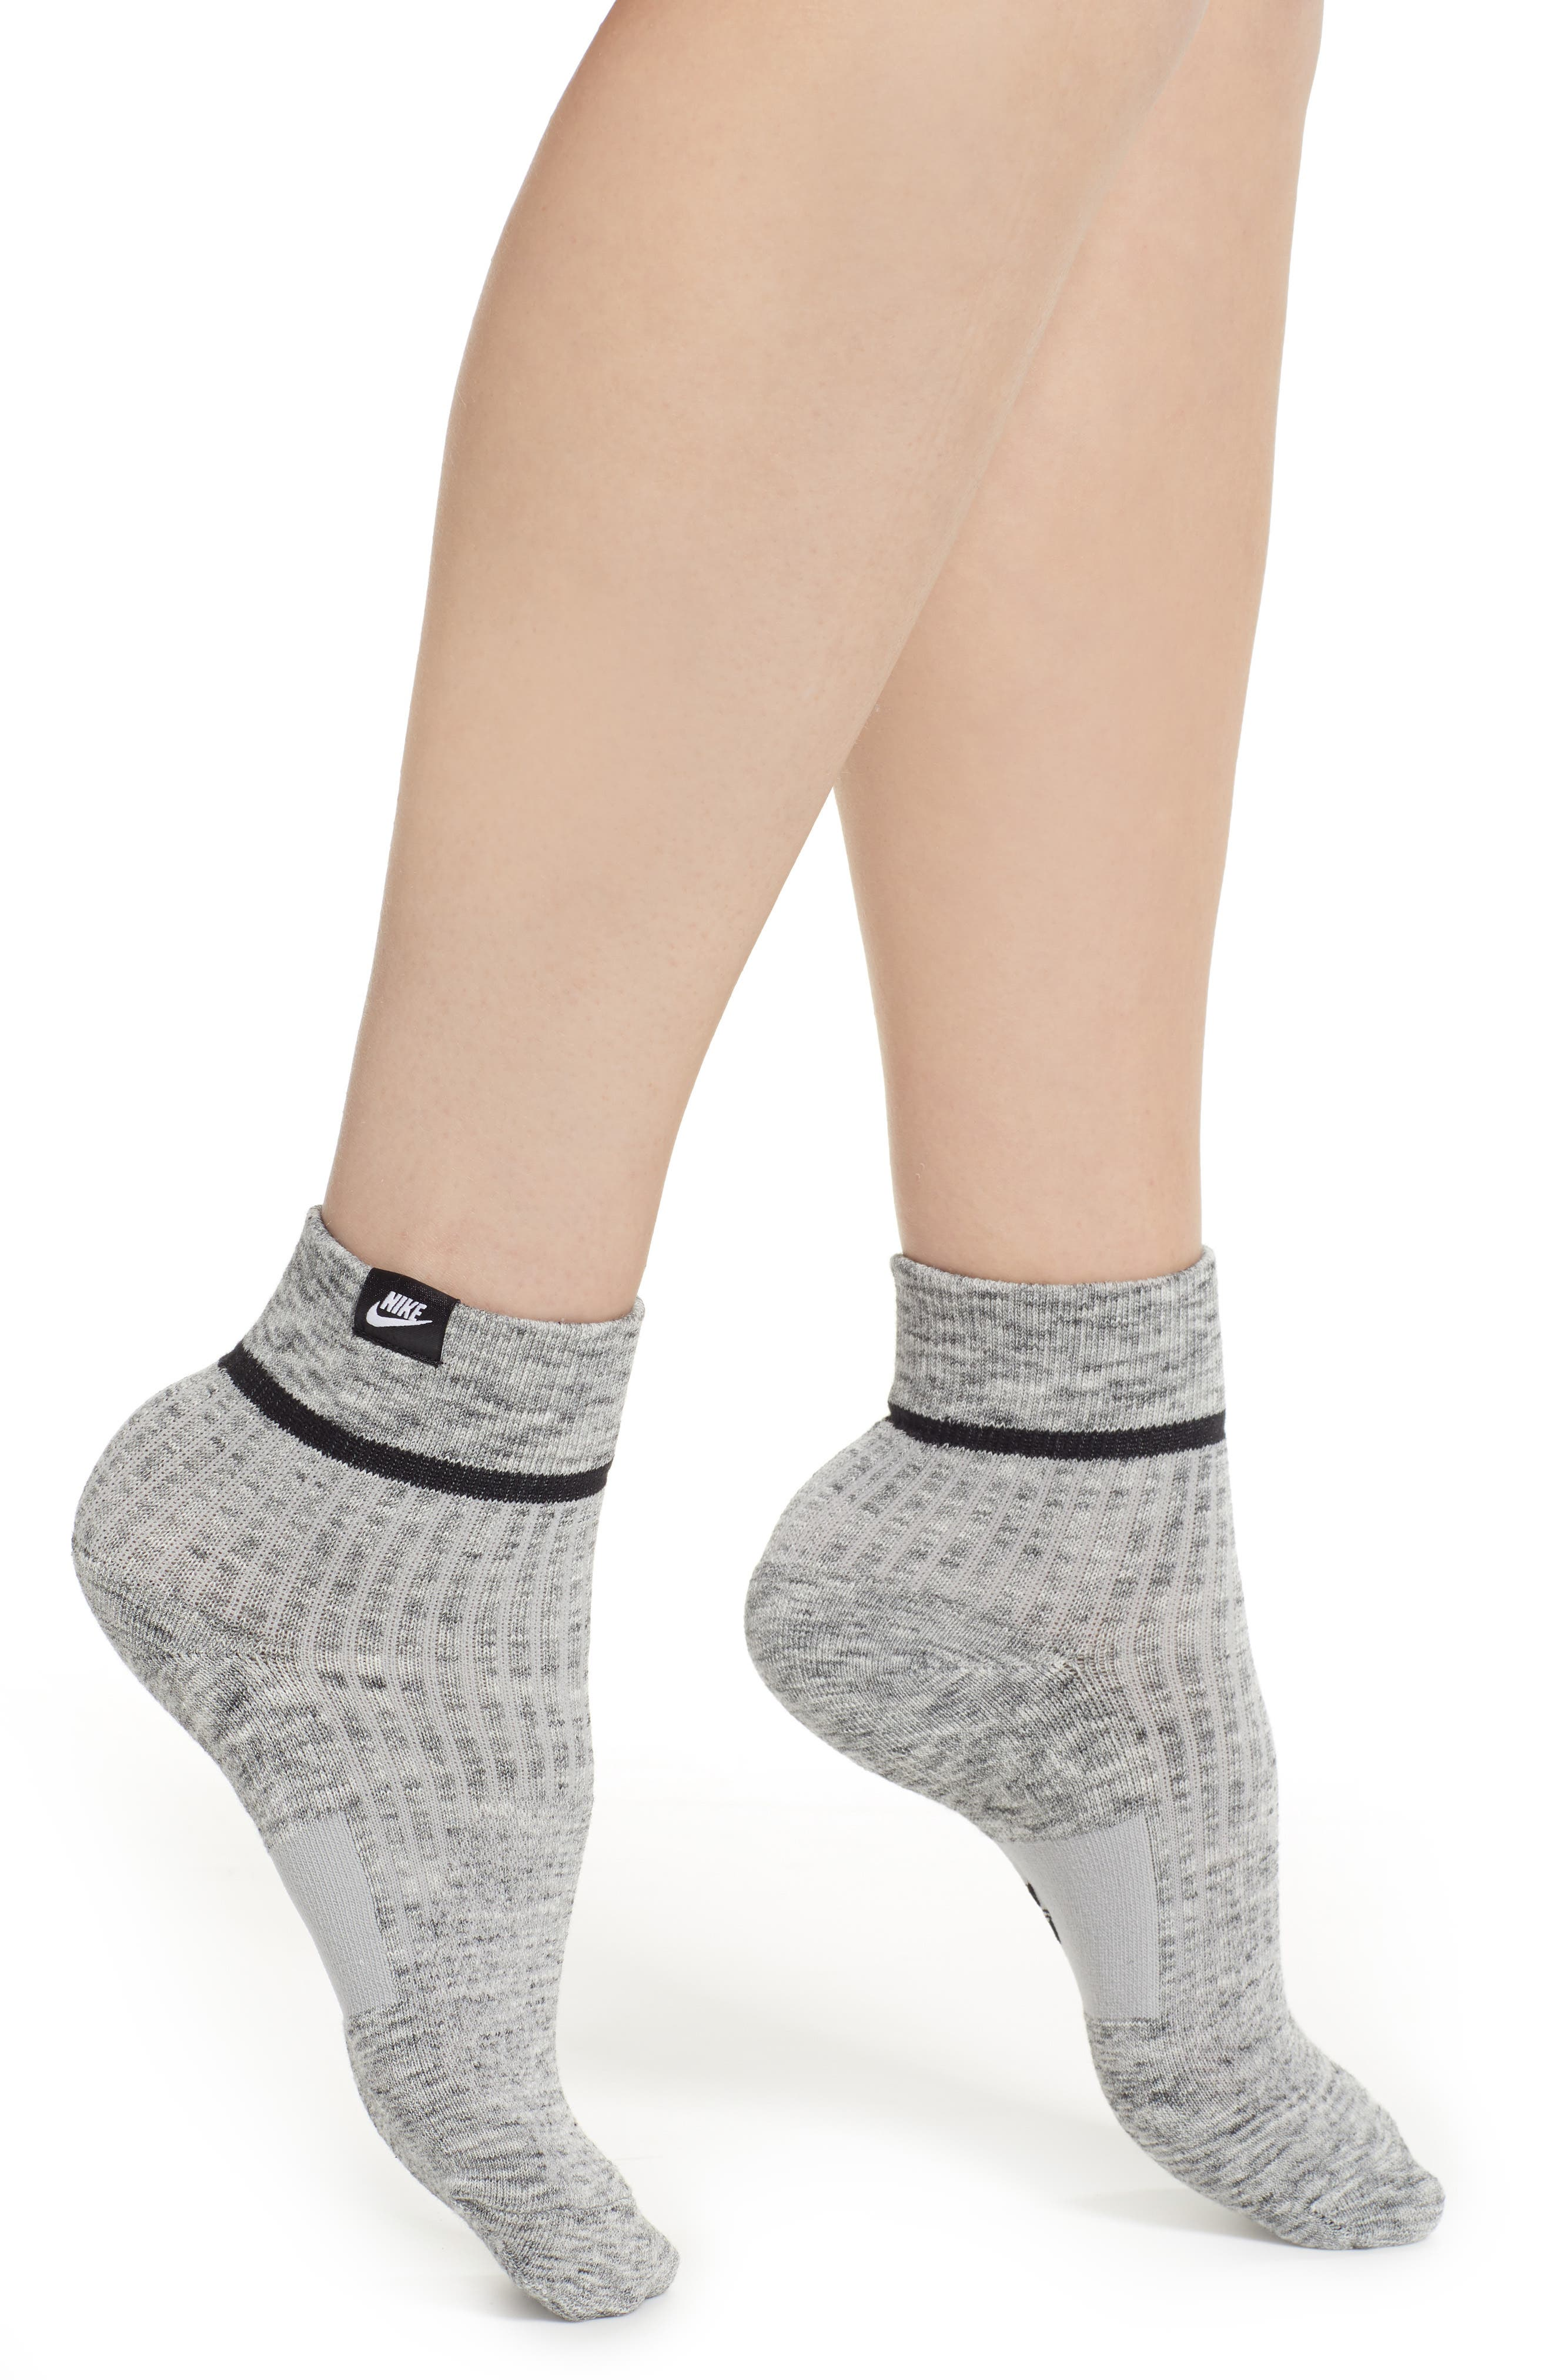 2-Pack SNKR Sox Essential Ankle Socks,                             Main thumbnail 1, color,                             020